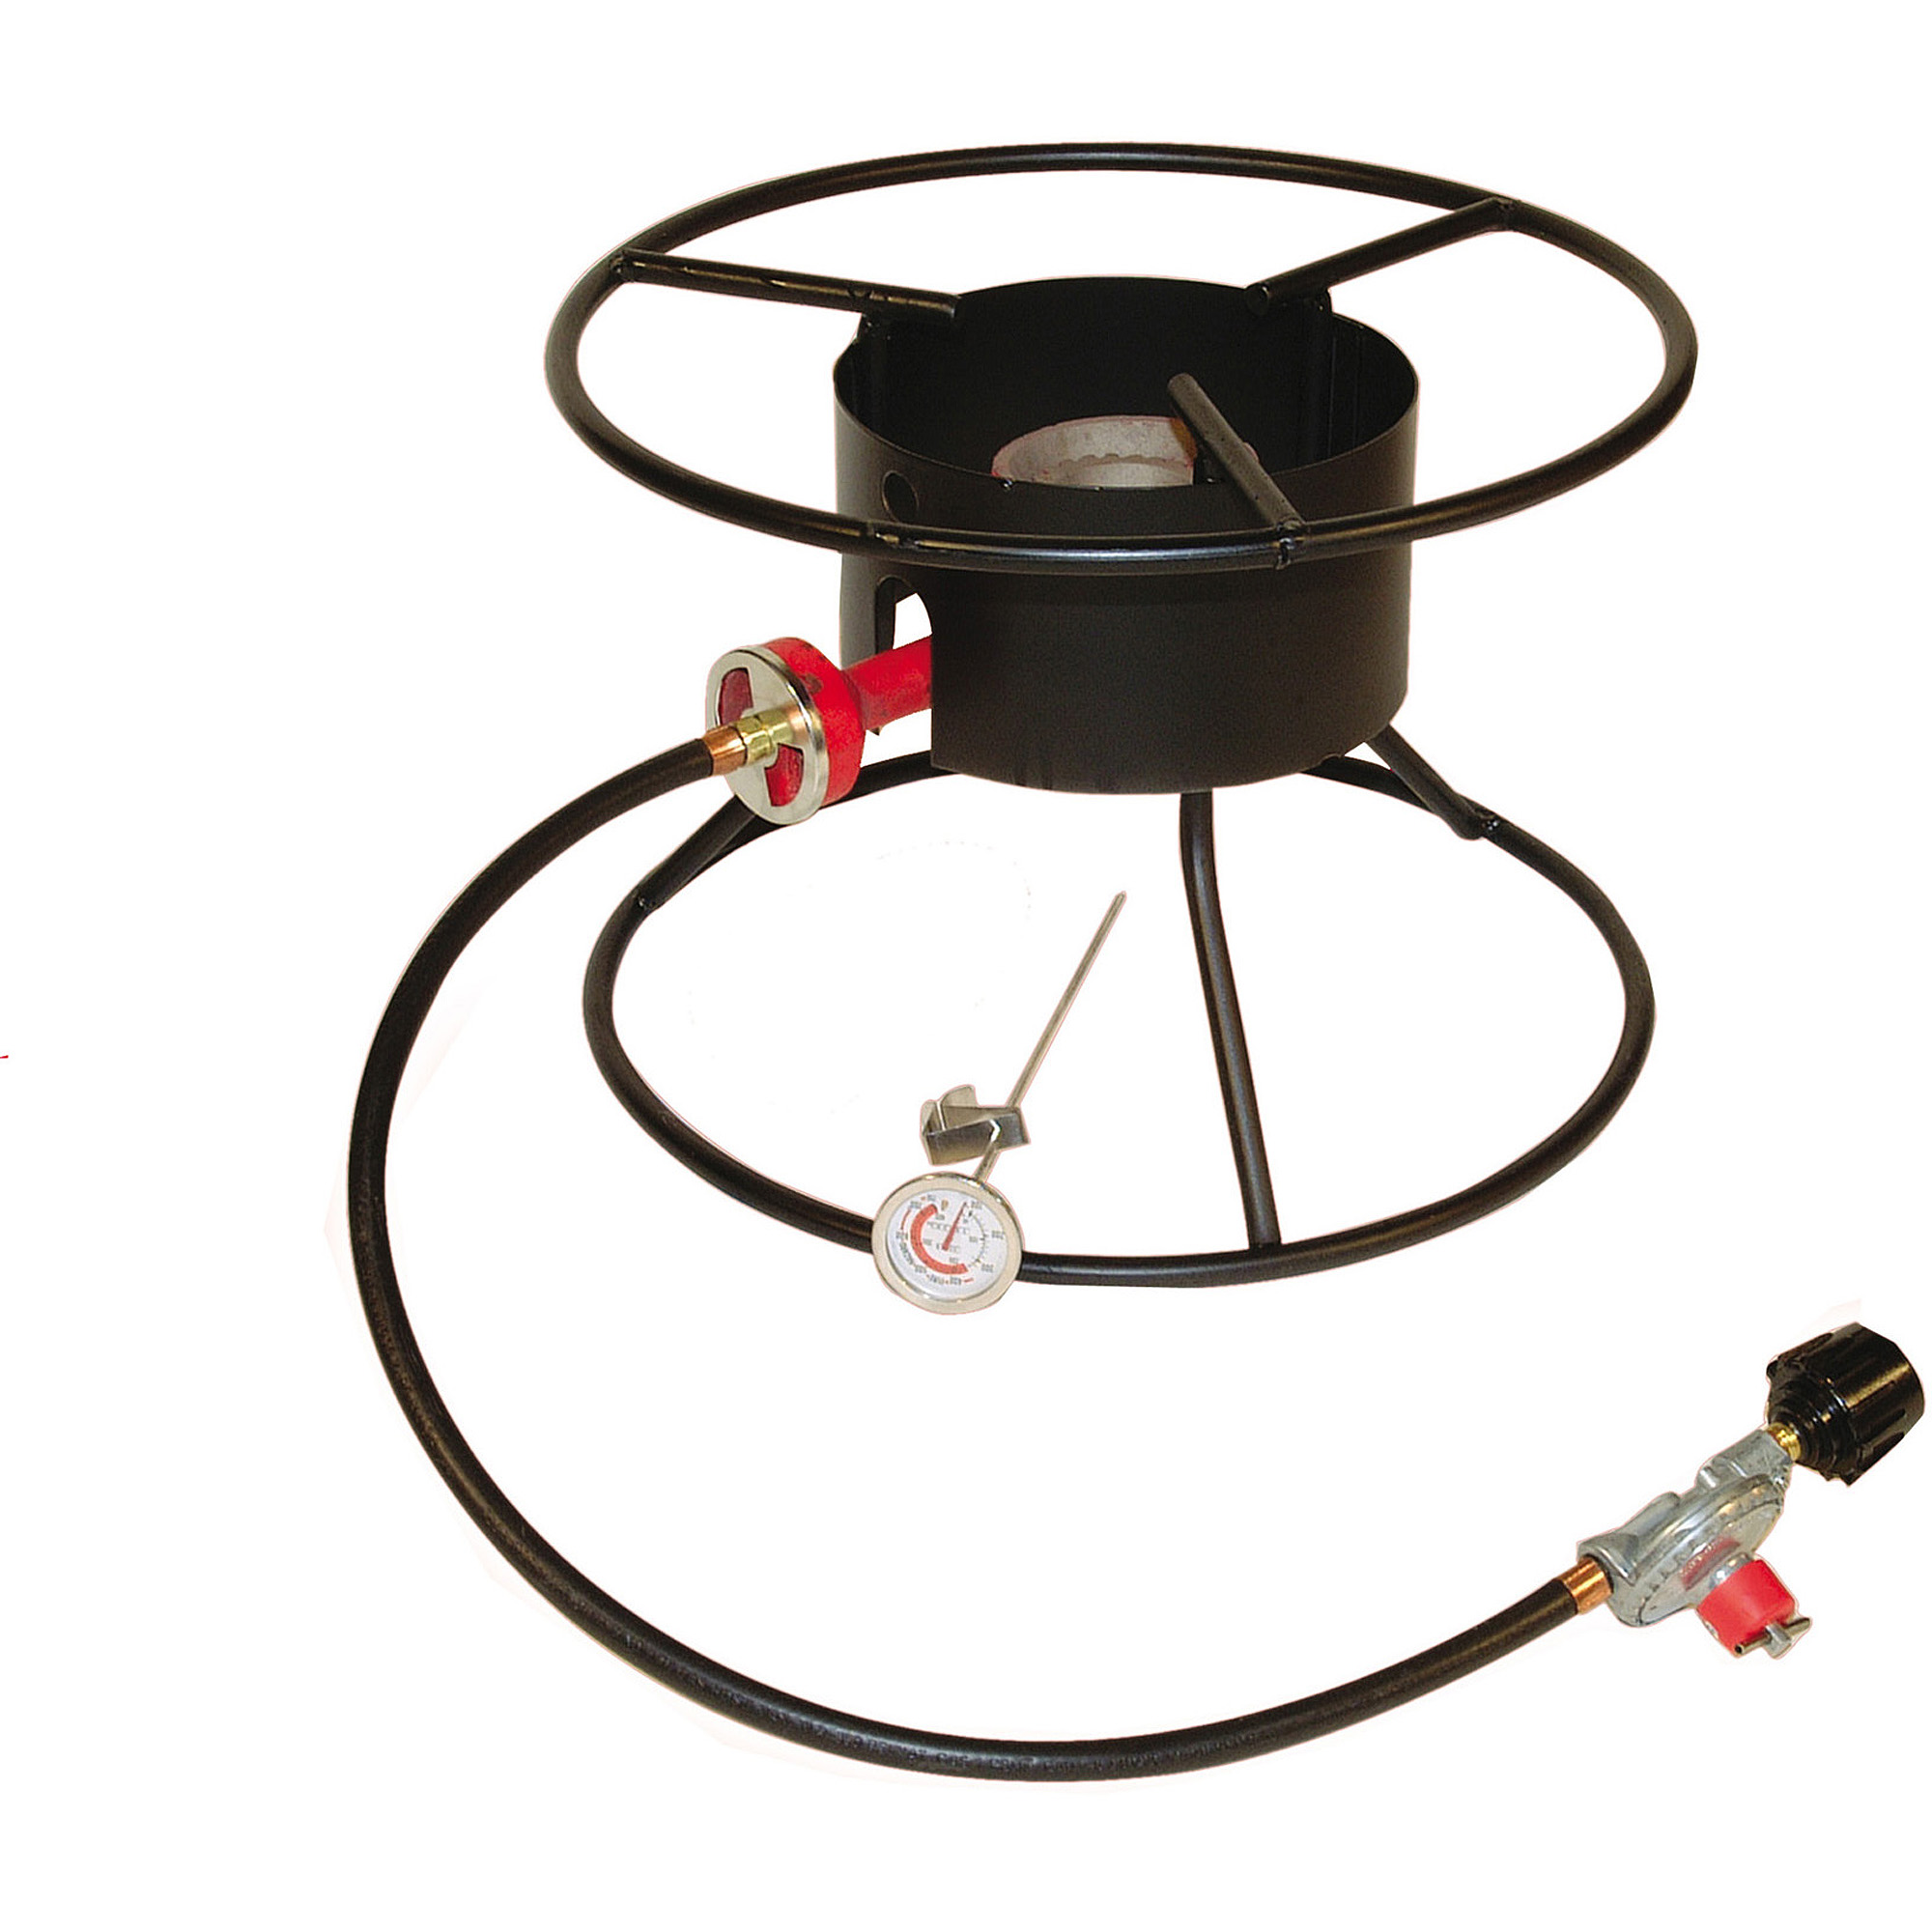 "King Kooker Portable Propane Outdoor Cooker with 17"" Top Ring"